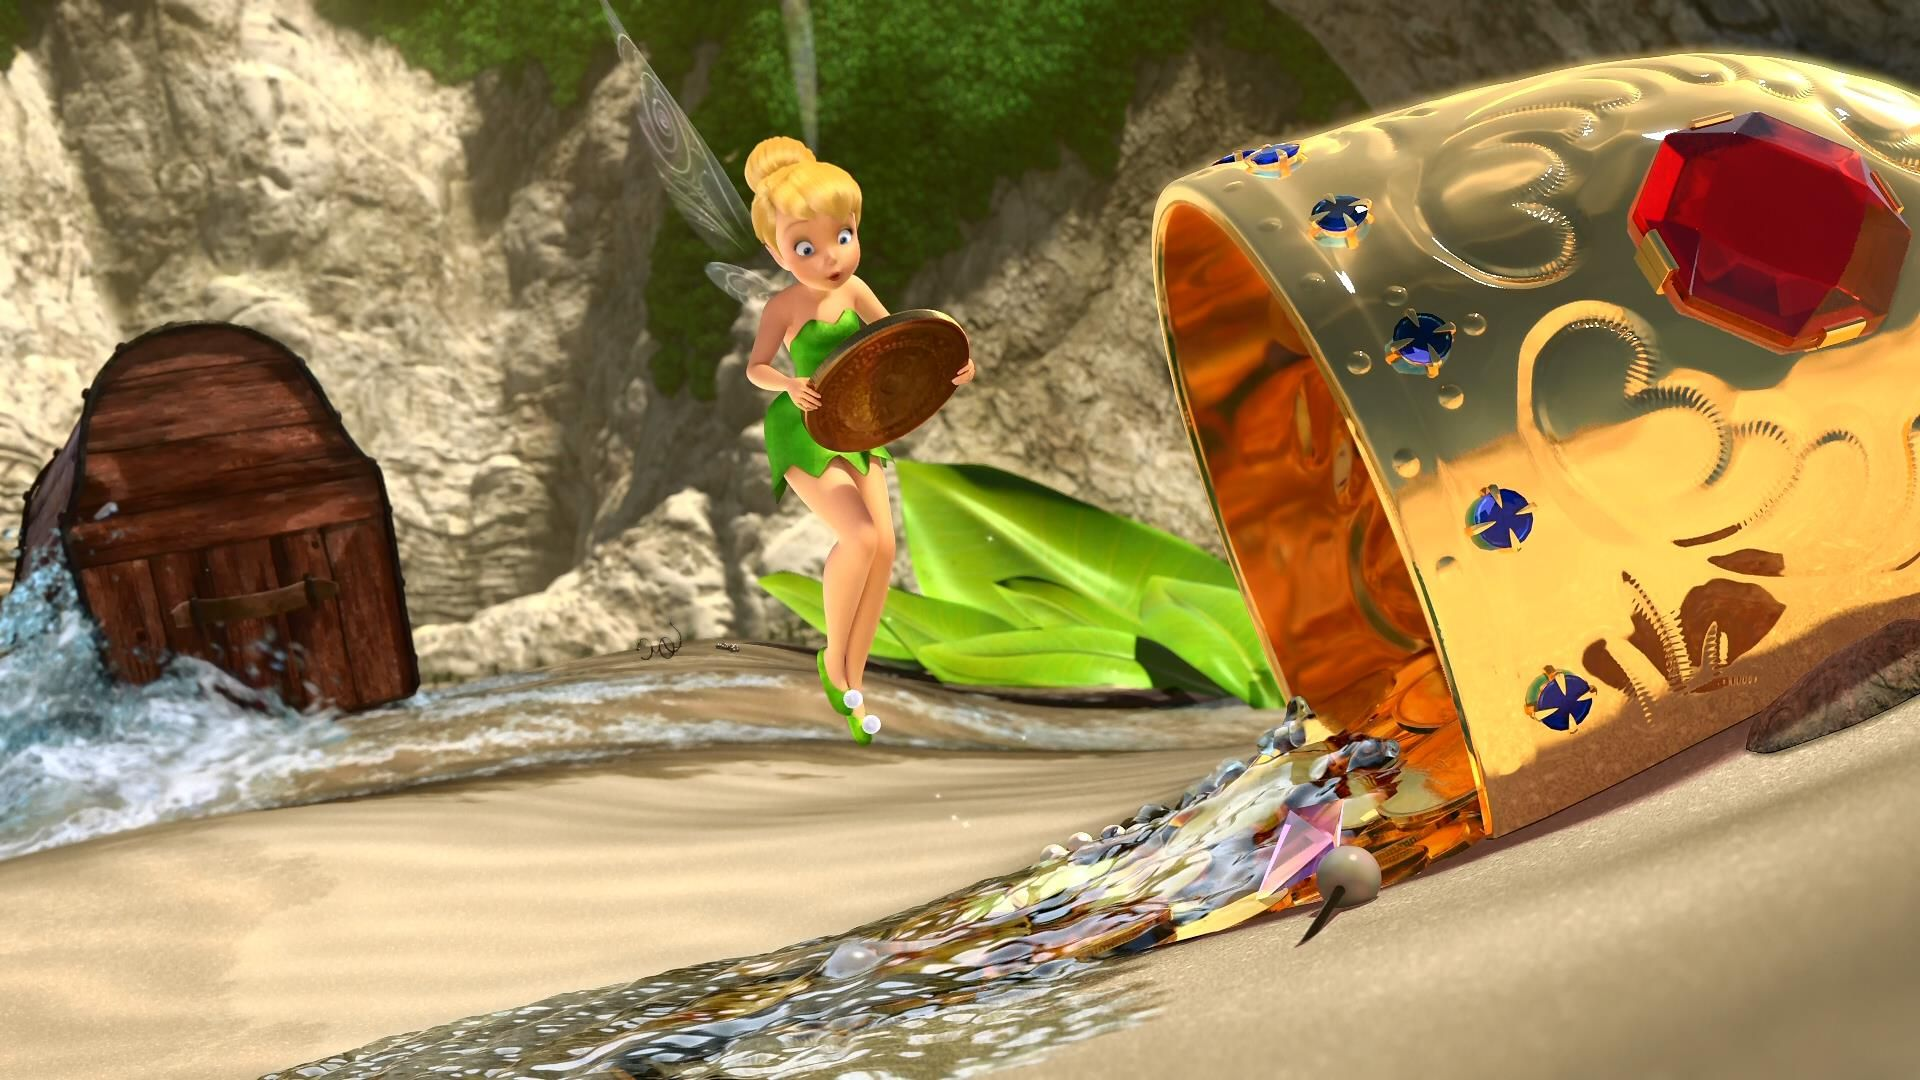 Disney The Pirate Fairy 2014 Wallpapers Mobile